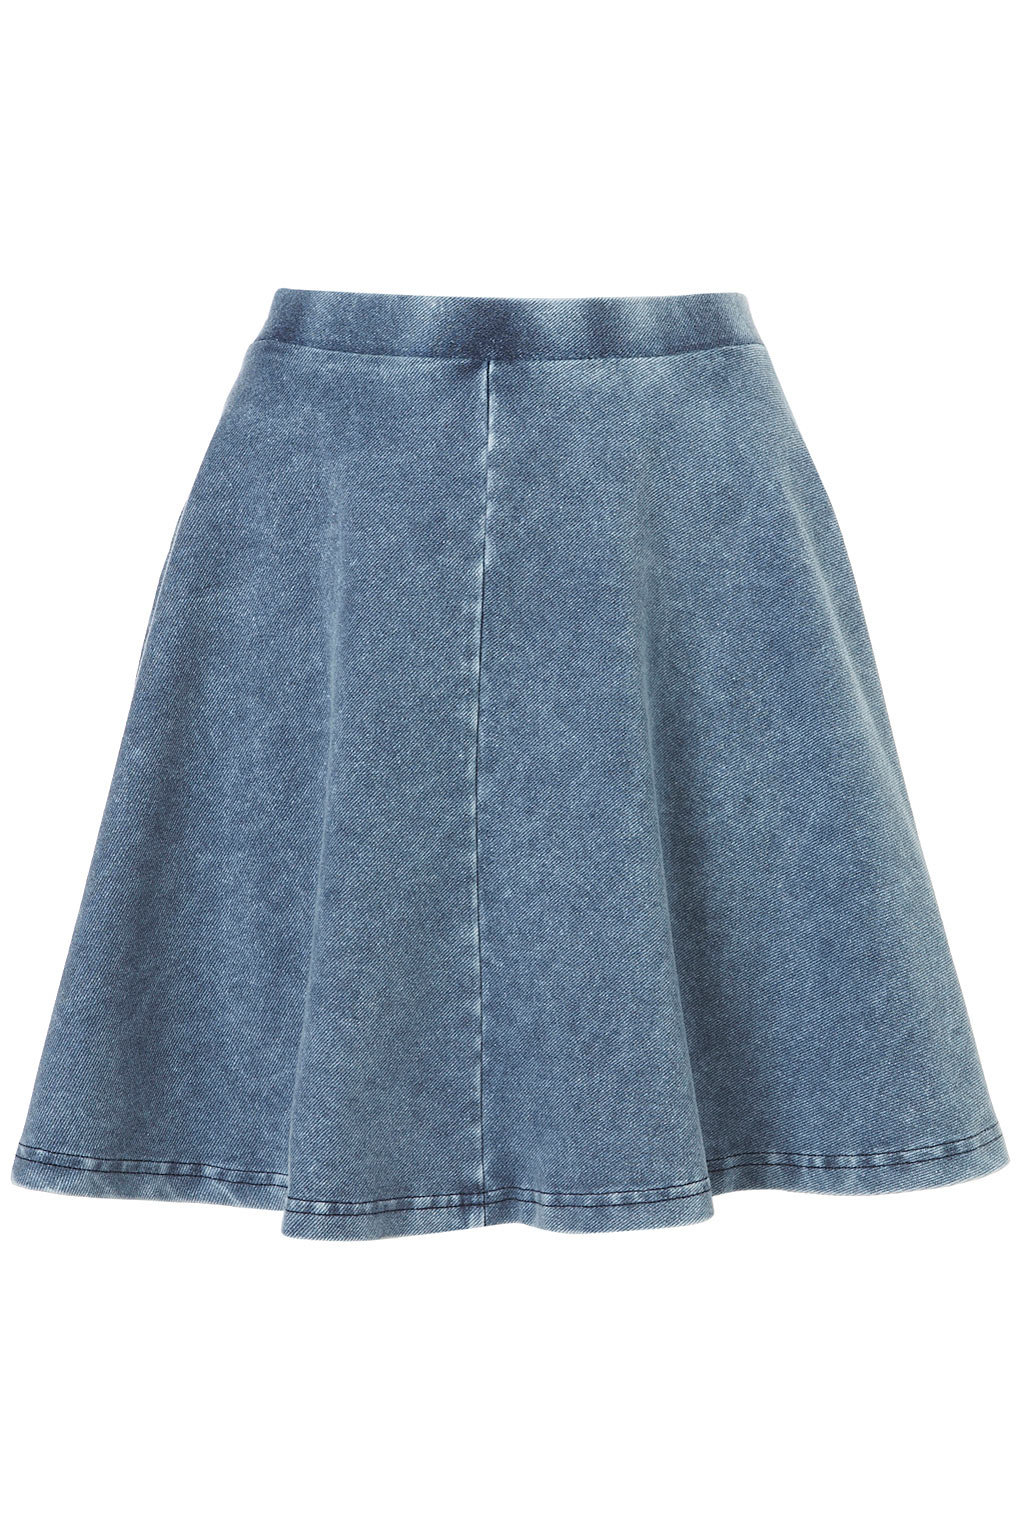 denim skater skirt skirts clothing from topshop